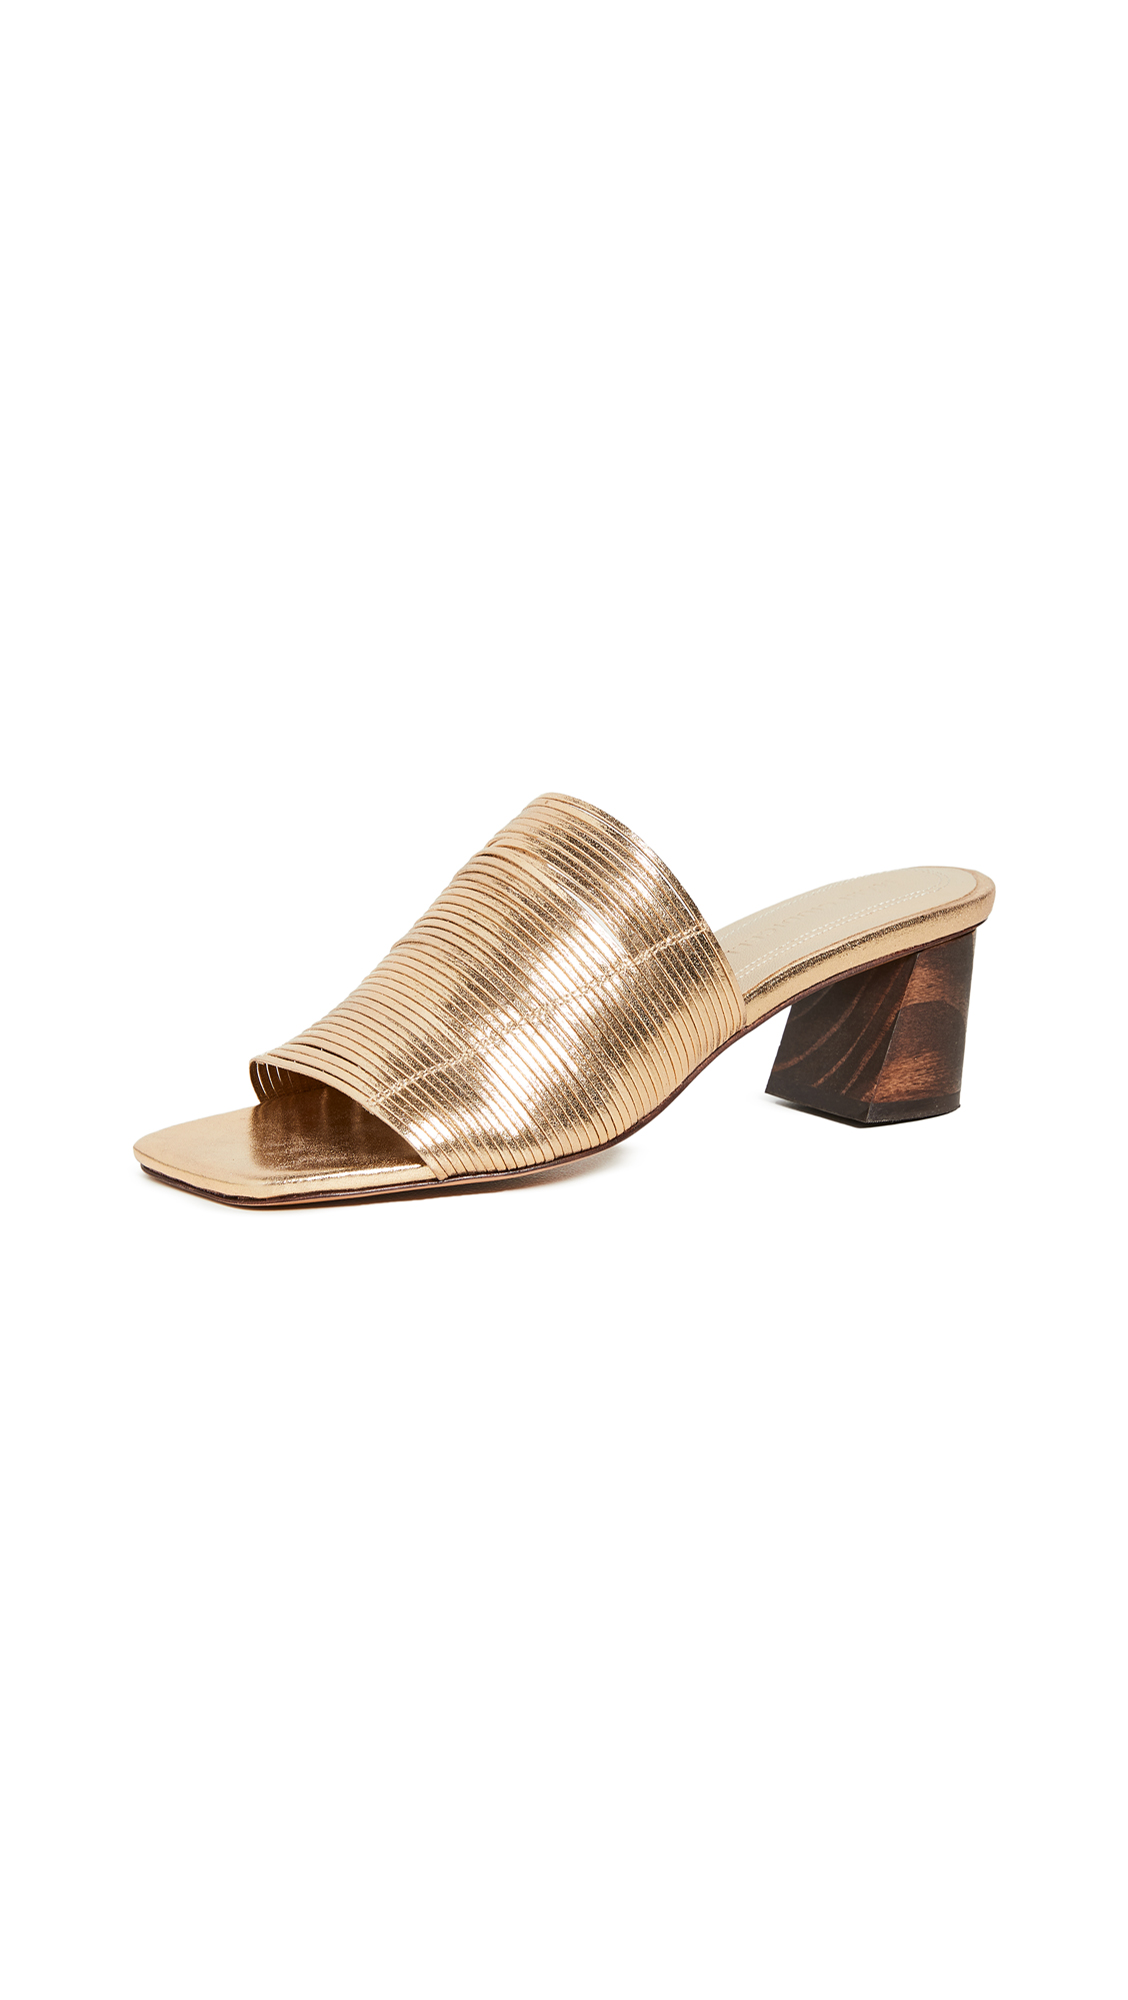 Photo of Mari Giudicelli Giselle Sandals - shop Mari Giudicelli Sandals, Flat online